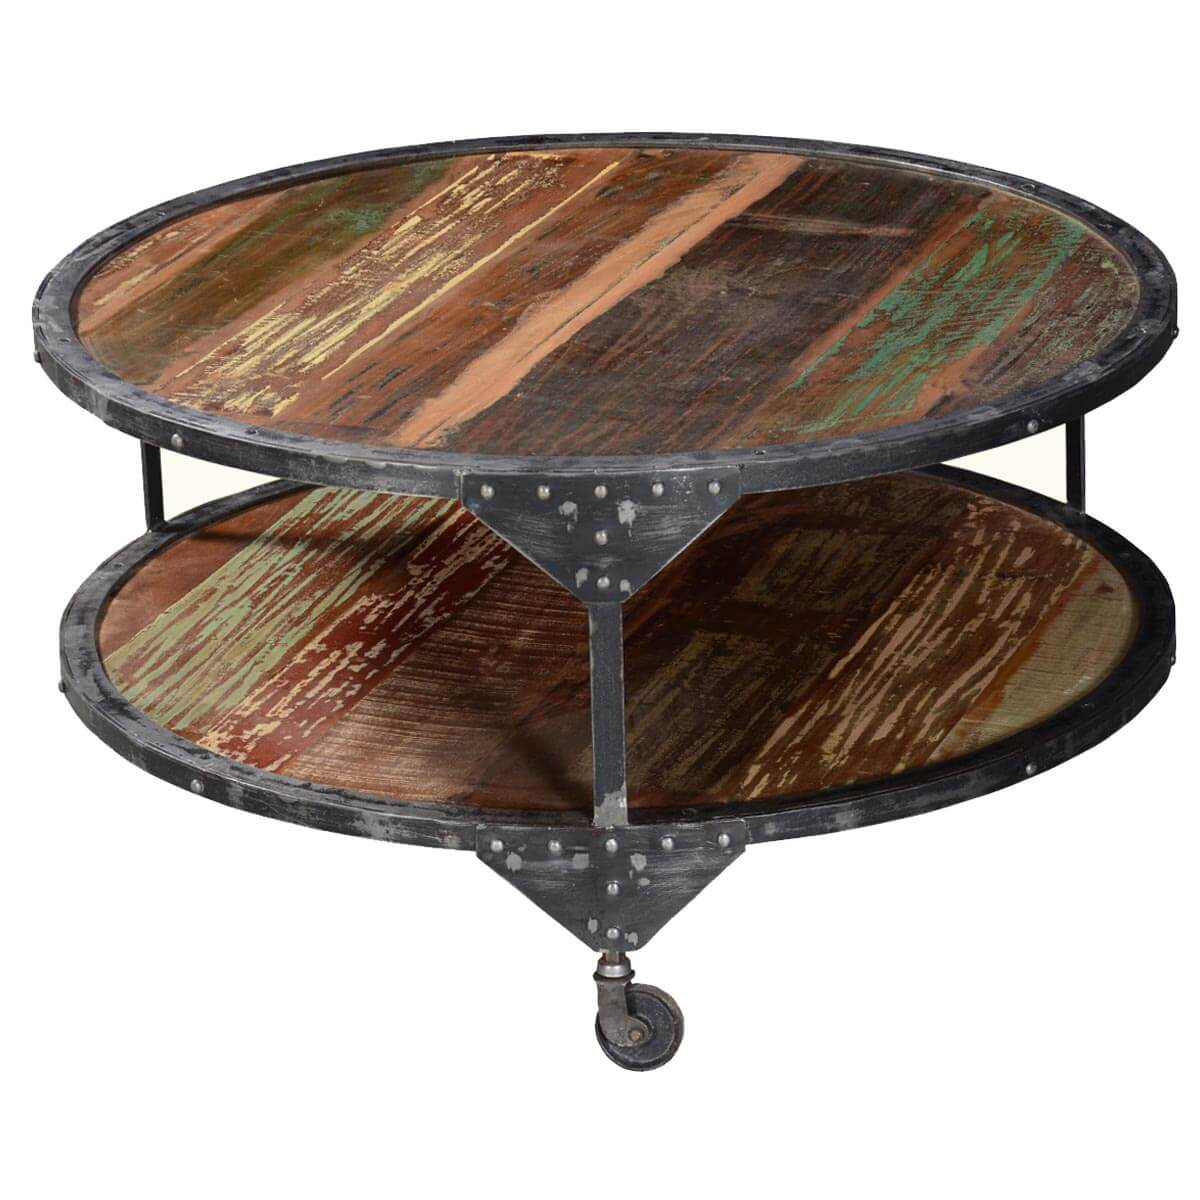 Two Tier Reclaimed Wood Iron Rolling Round Industrial Coffee Table